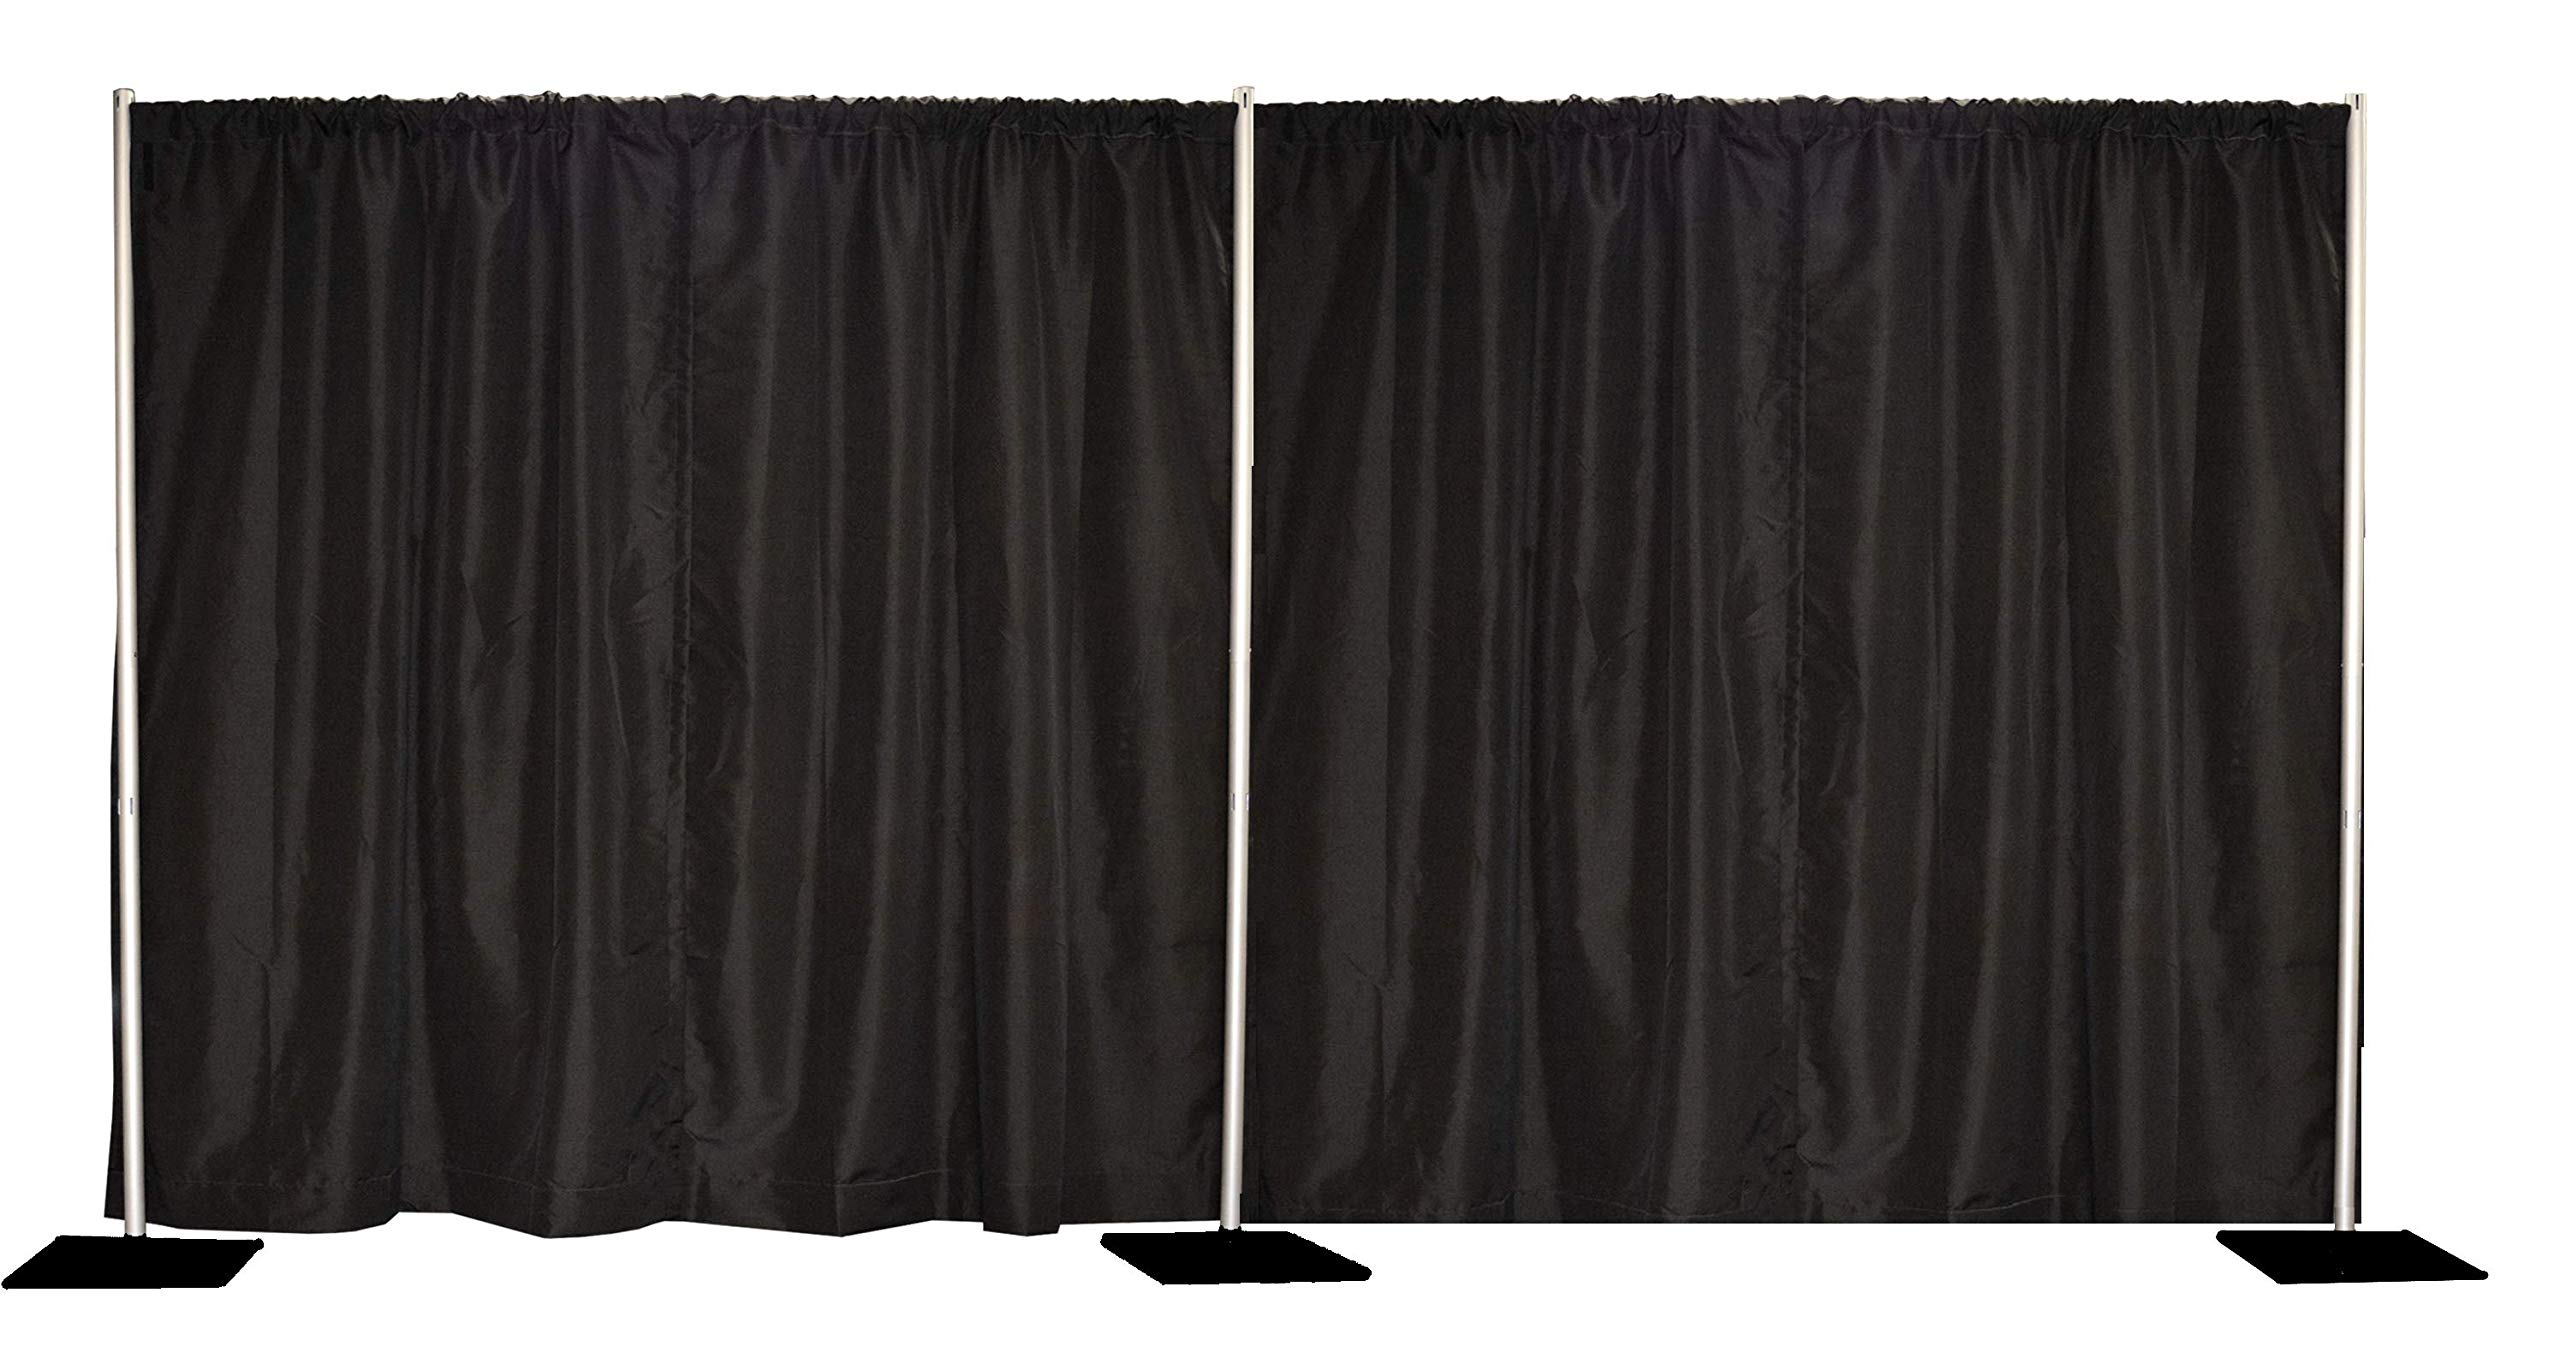 8'x20' Pipe and Drape Backdrop Kit in Premier Fabric (8'x20' Black) by Crowd Control Center